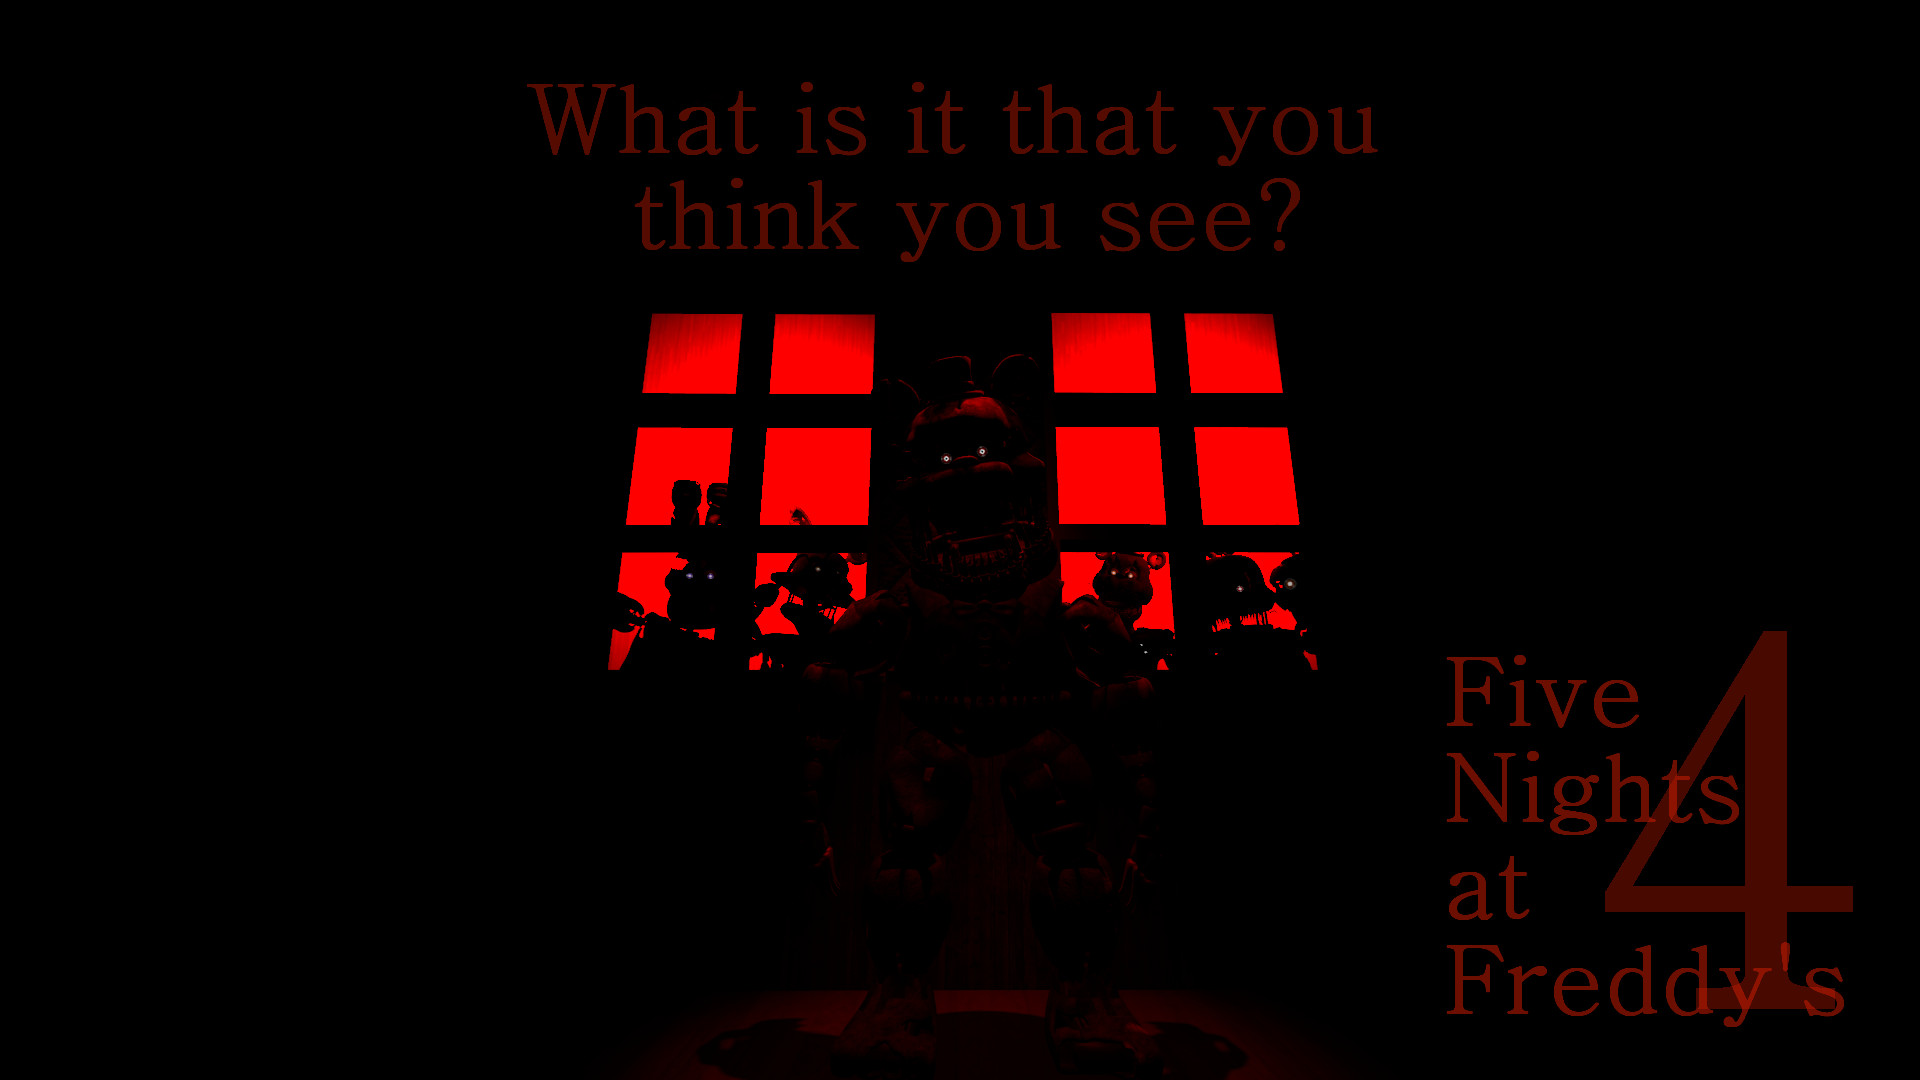 1920x1080 ImageI edited my FNaF 4 Desktop BG slightly, making the text myself to  improve the quality. What do you think now?